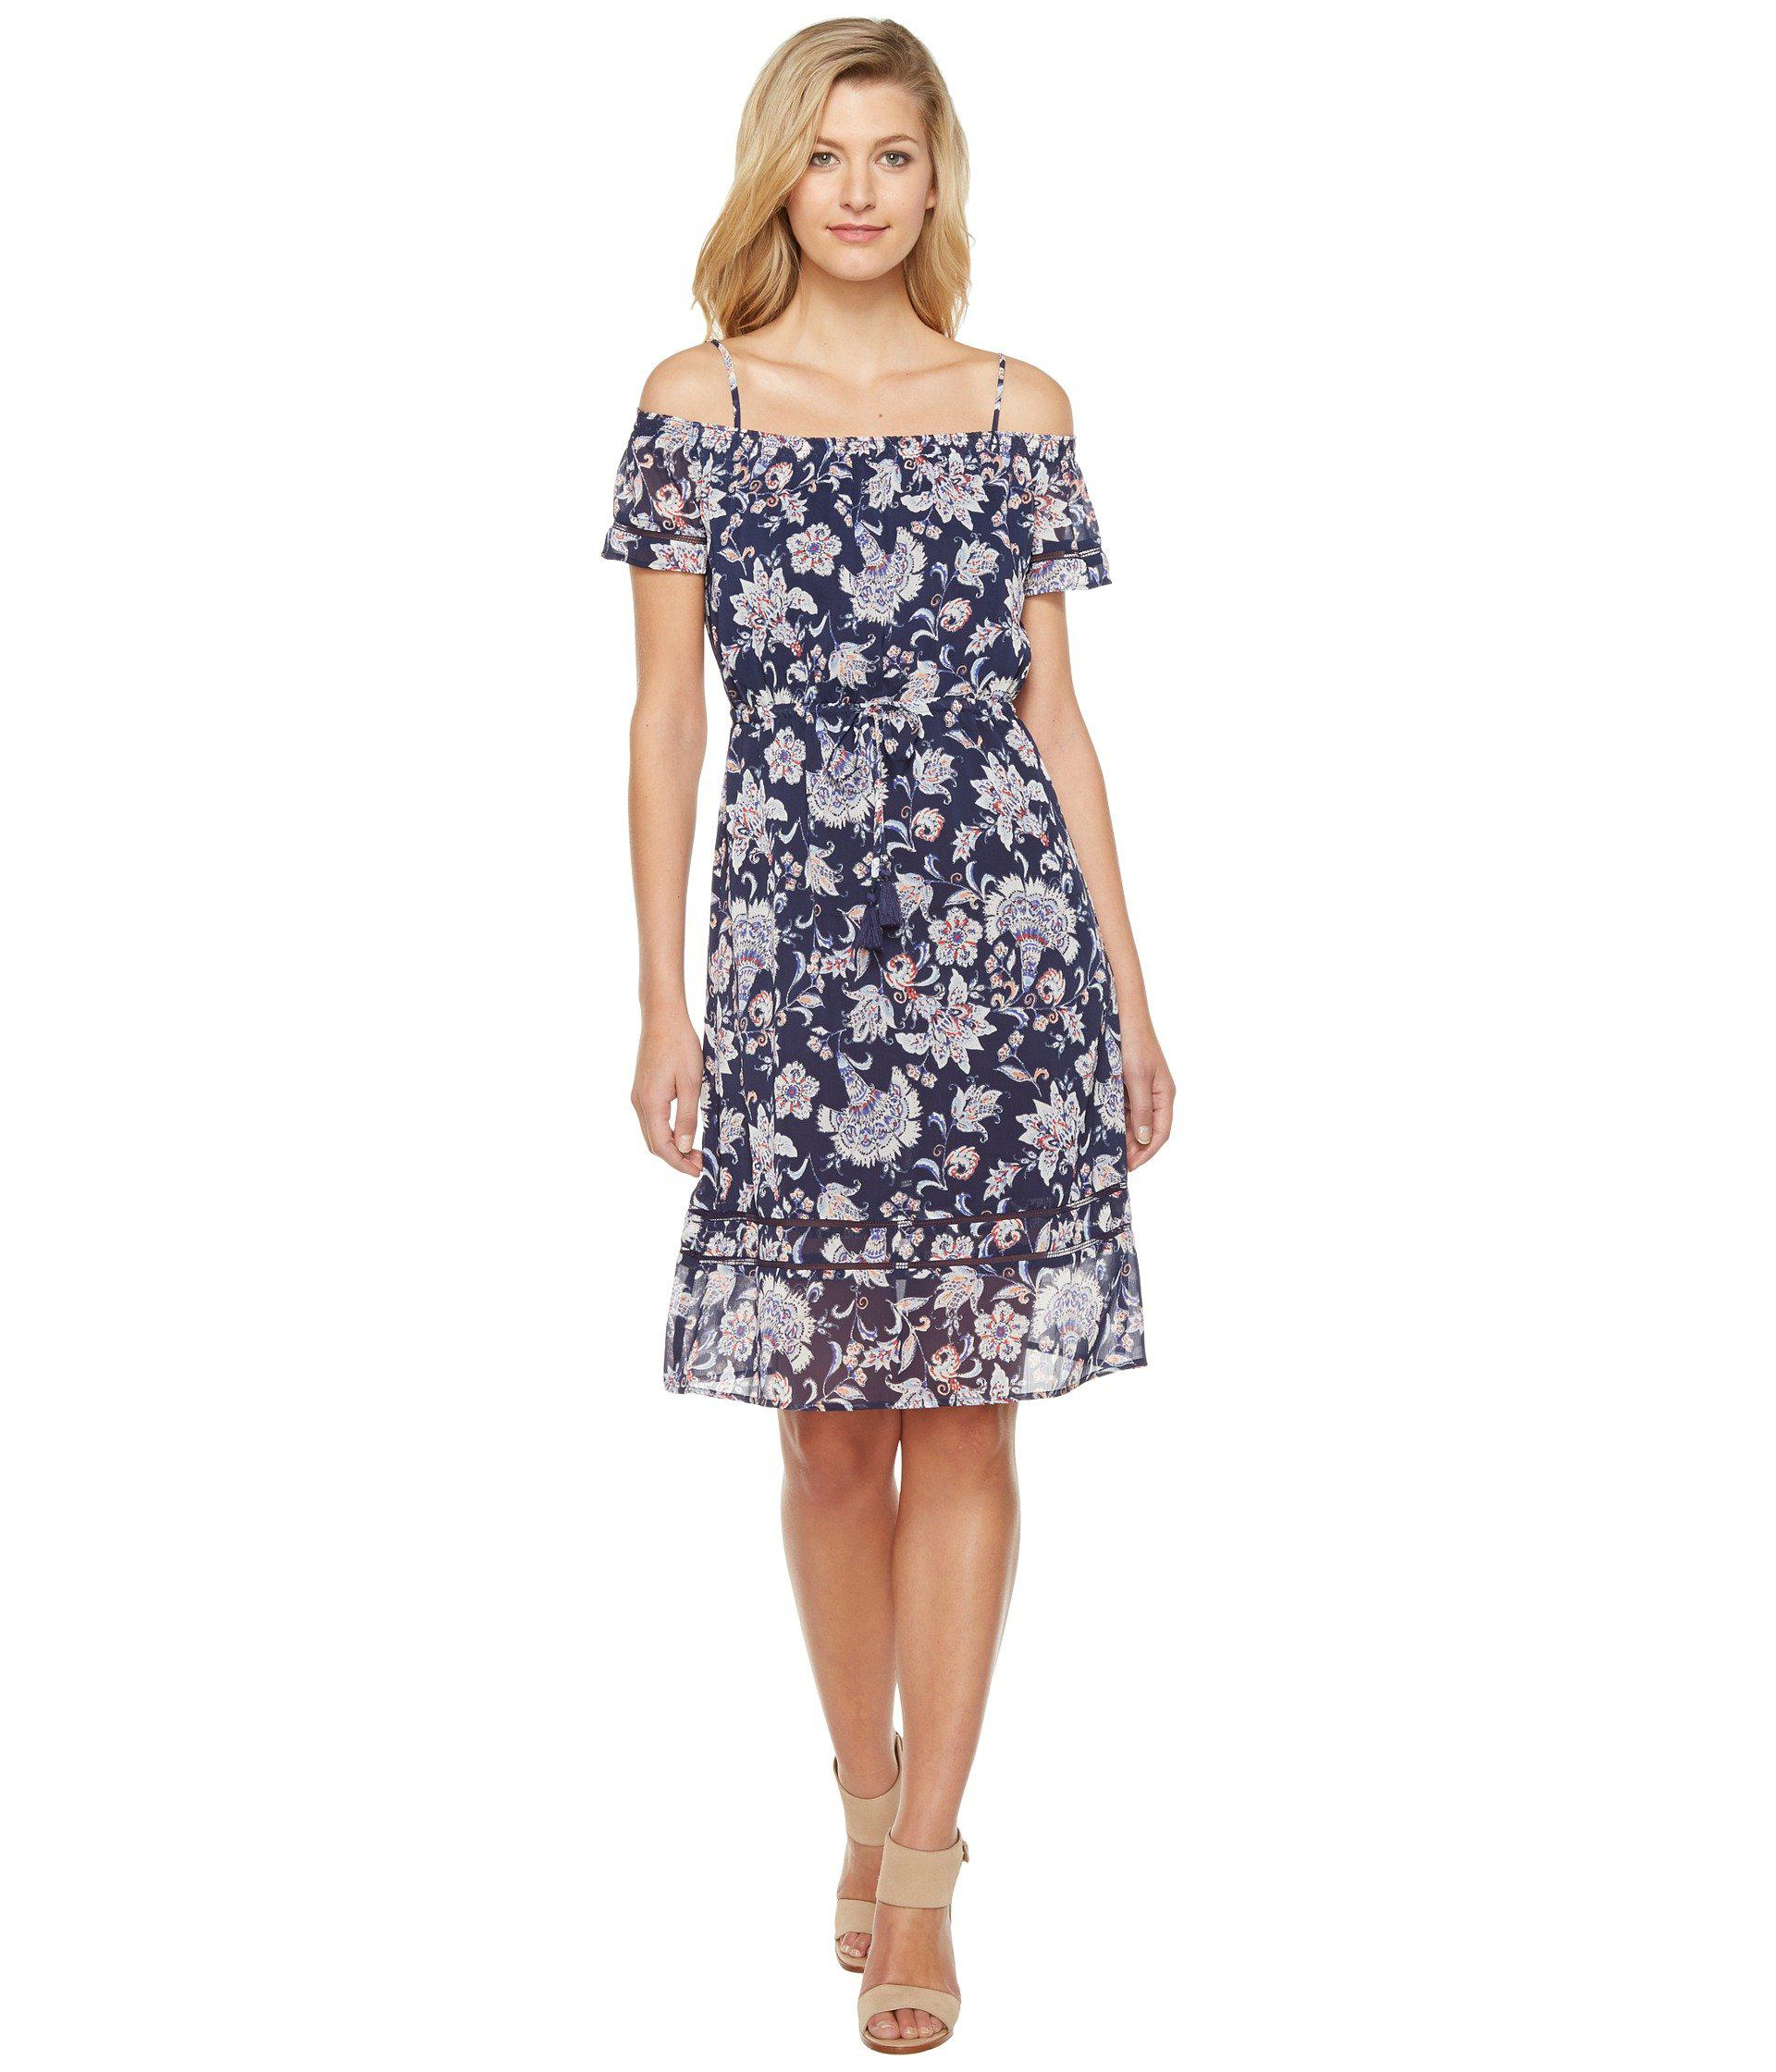 ae283ef17e78d Lyst - Lucky Brand Cold Shoulder Dress in Blue - Save 42%